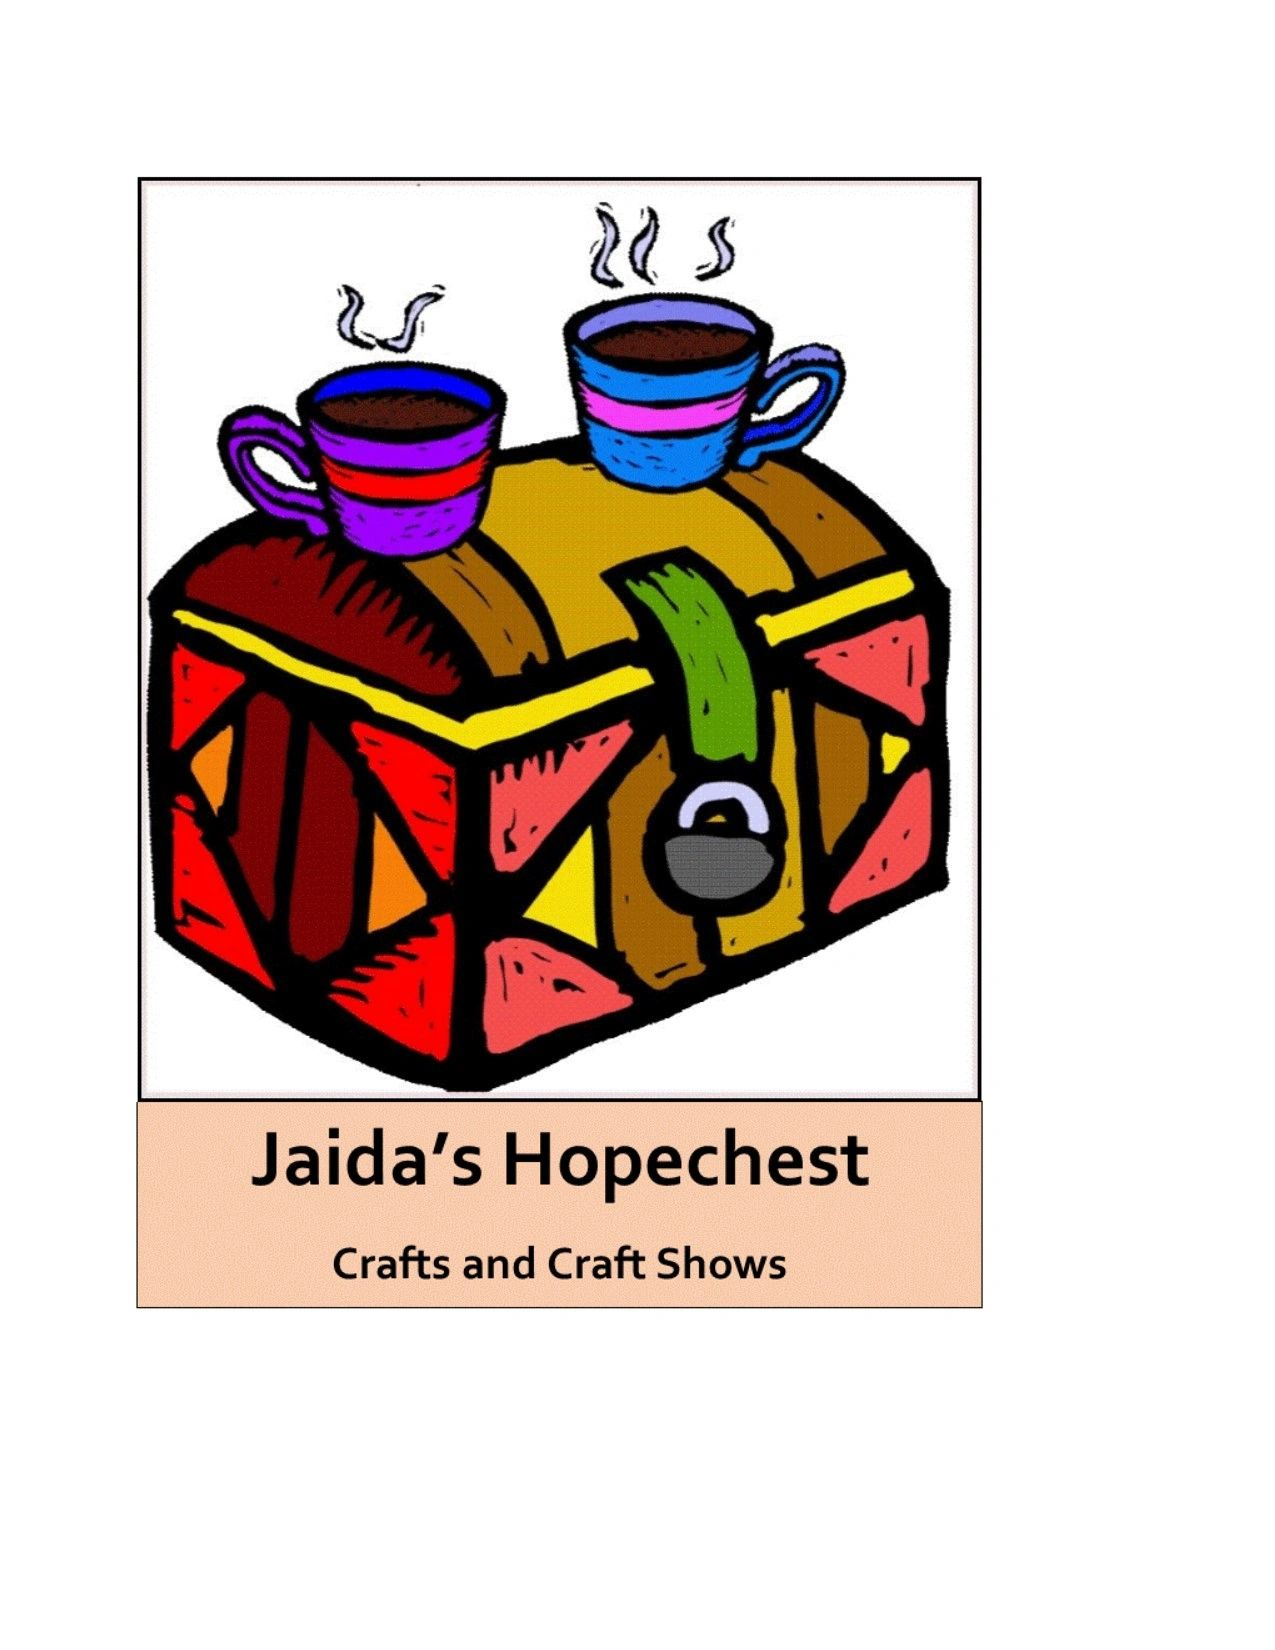 Two drinking mugs filled with hot beverages sit on top of a colorful wood, humpback chest.